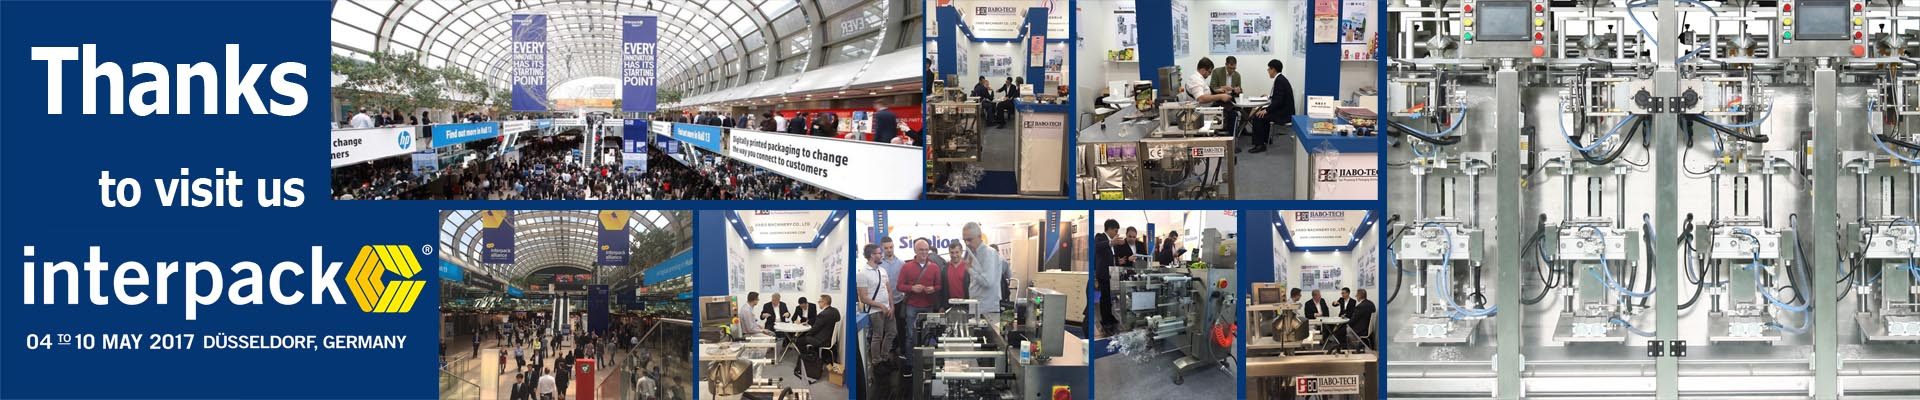 thanks to visit us at interpack 2017